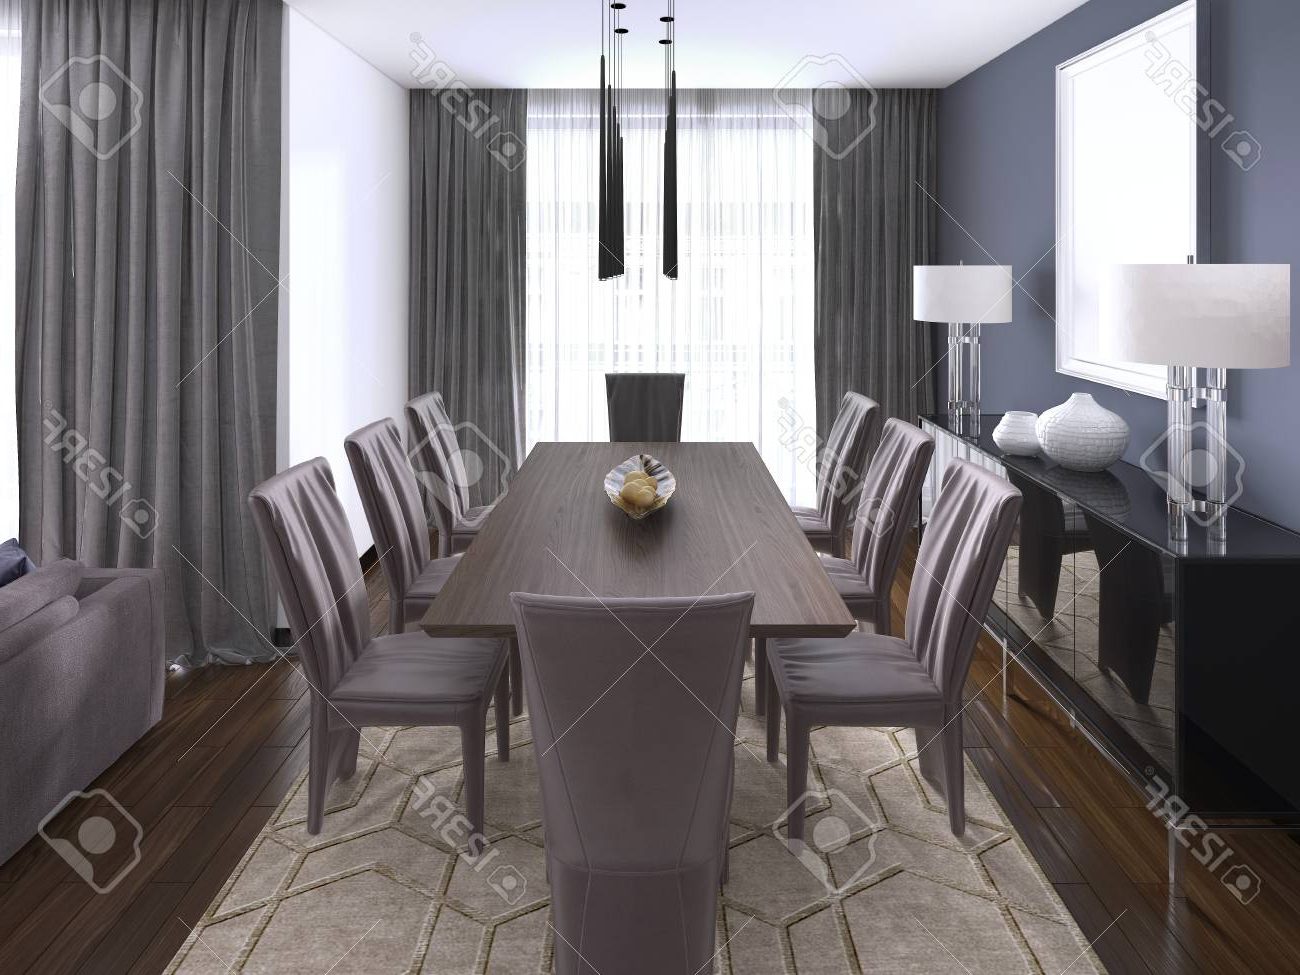 Modern Dining Tables With Regard To Most Recent Luxurious Modern Dining Room Boasts A Wood Dining Table Illuminated. (View 26 of 30)